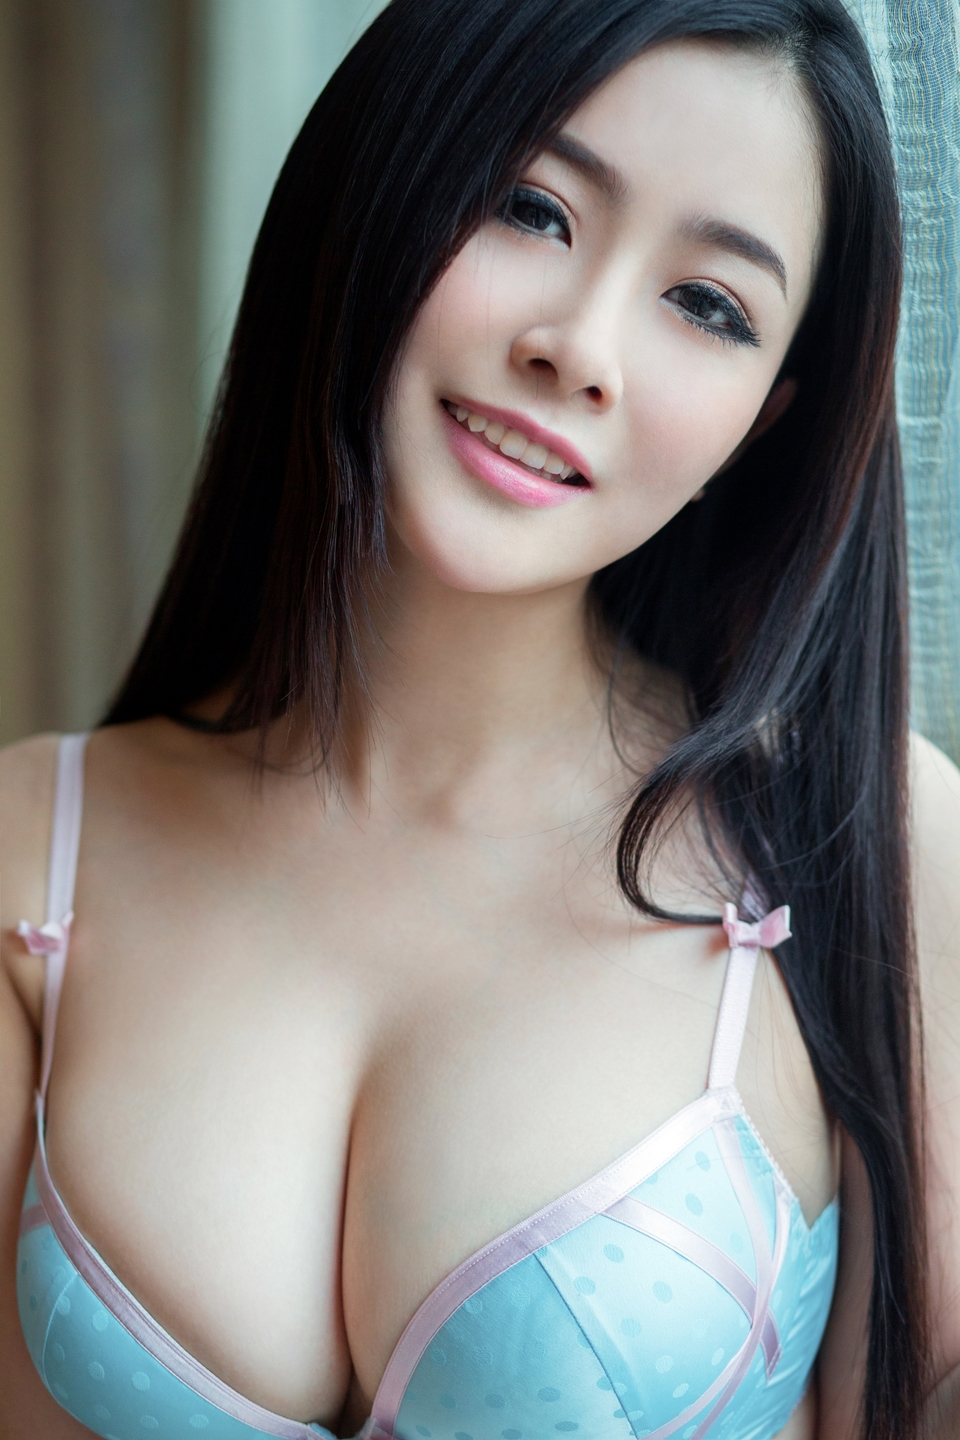 japan hot girl xnxx